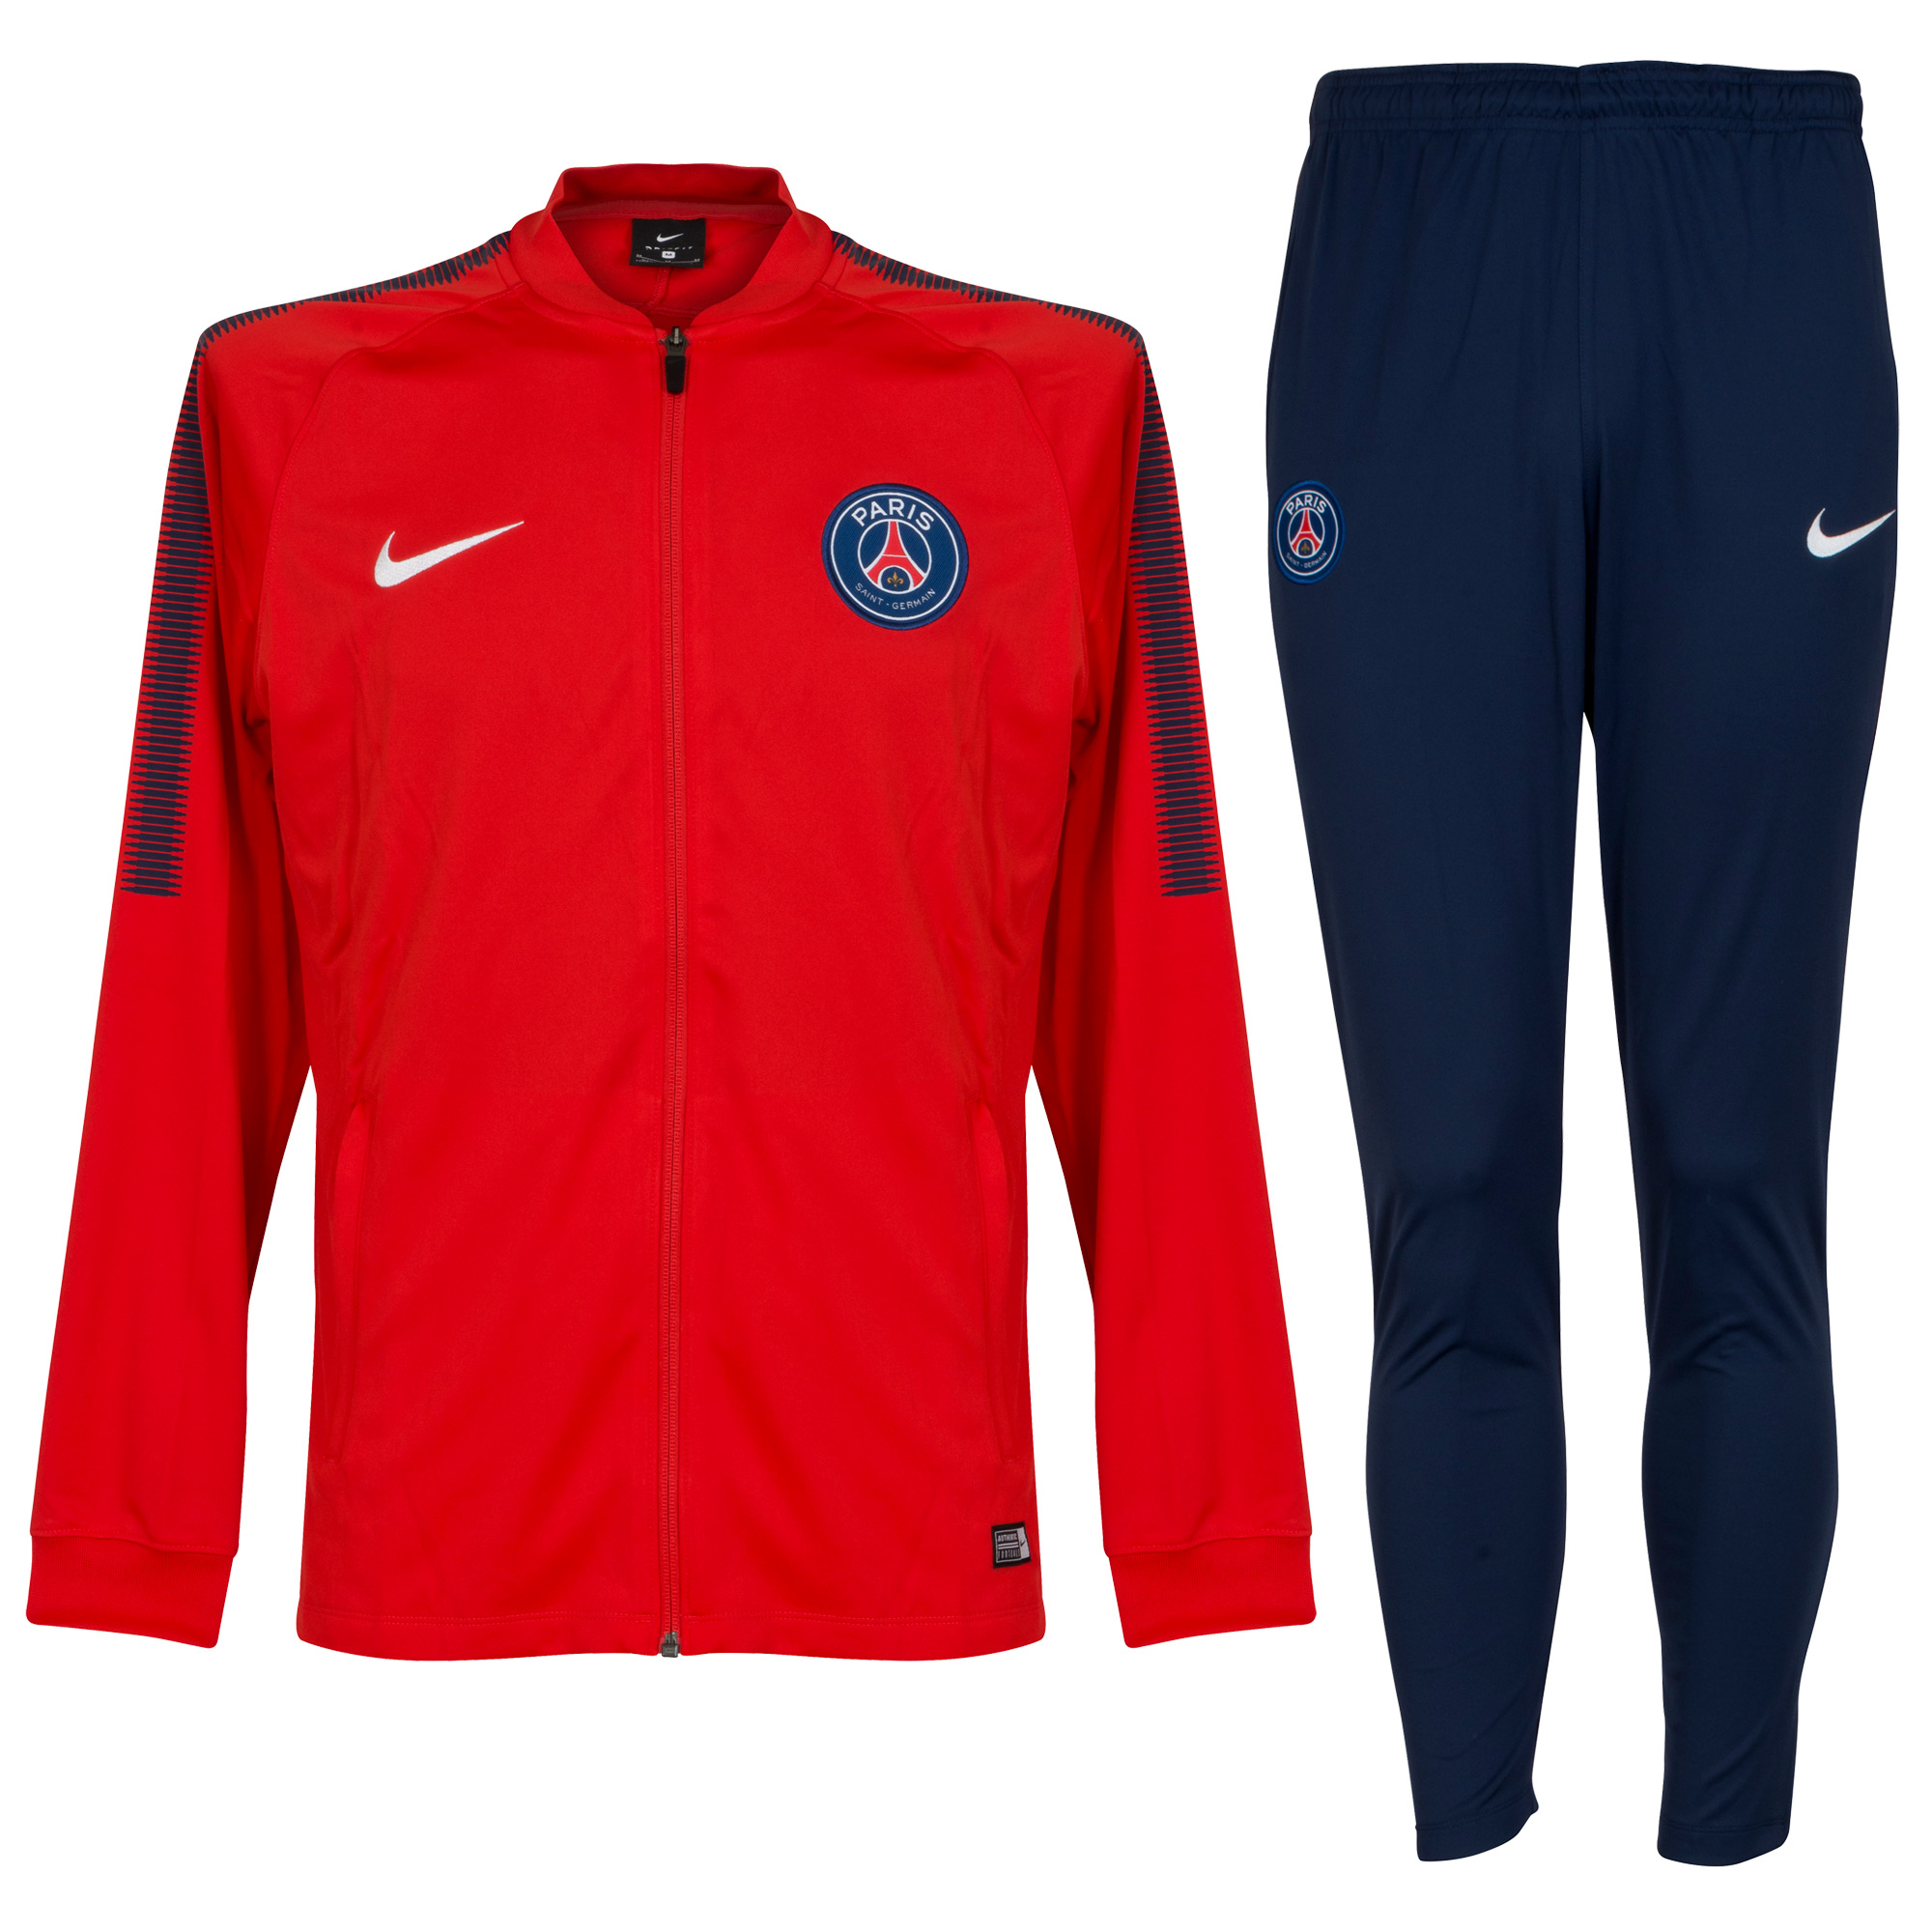 PSG Training Tracksuit 2017 / 2018 - Red/Navy - M